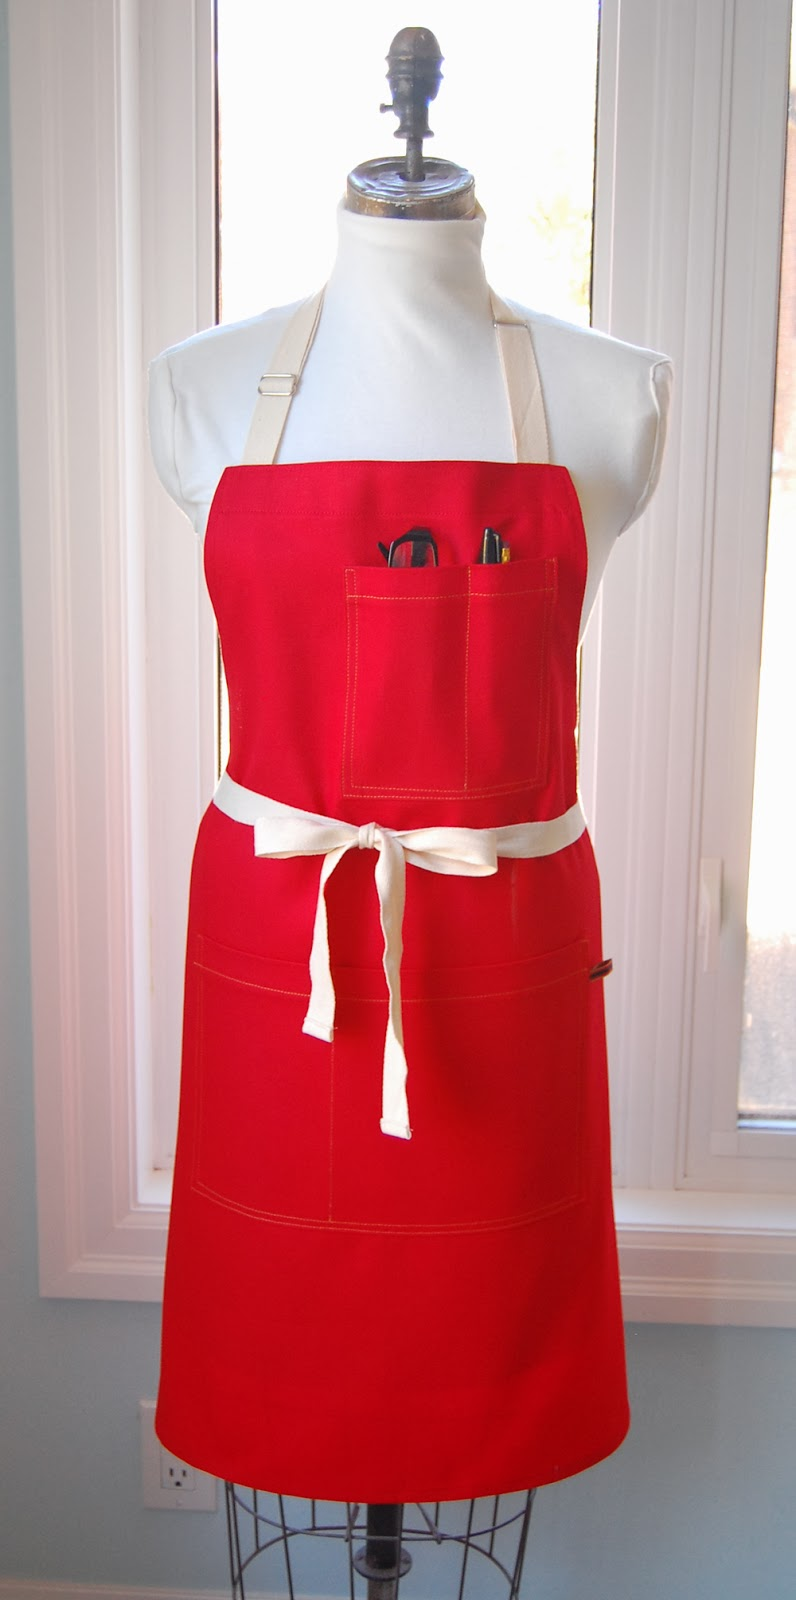 Sew Alice Shop Aprons Aprons For Work